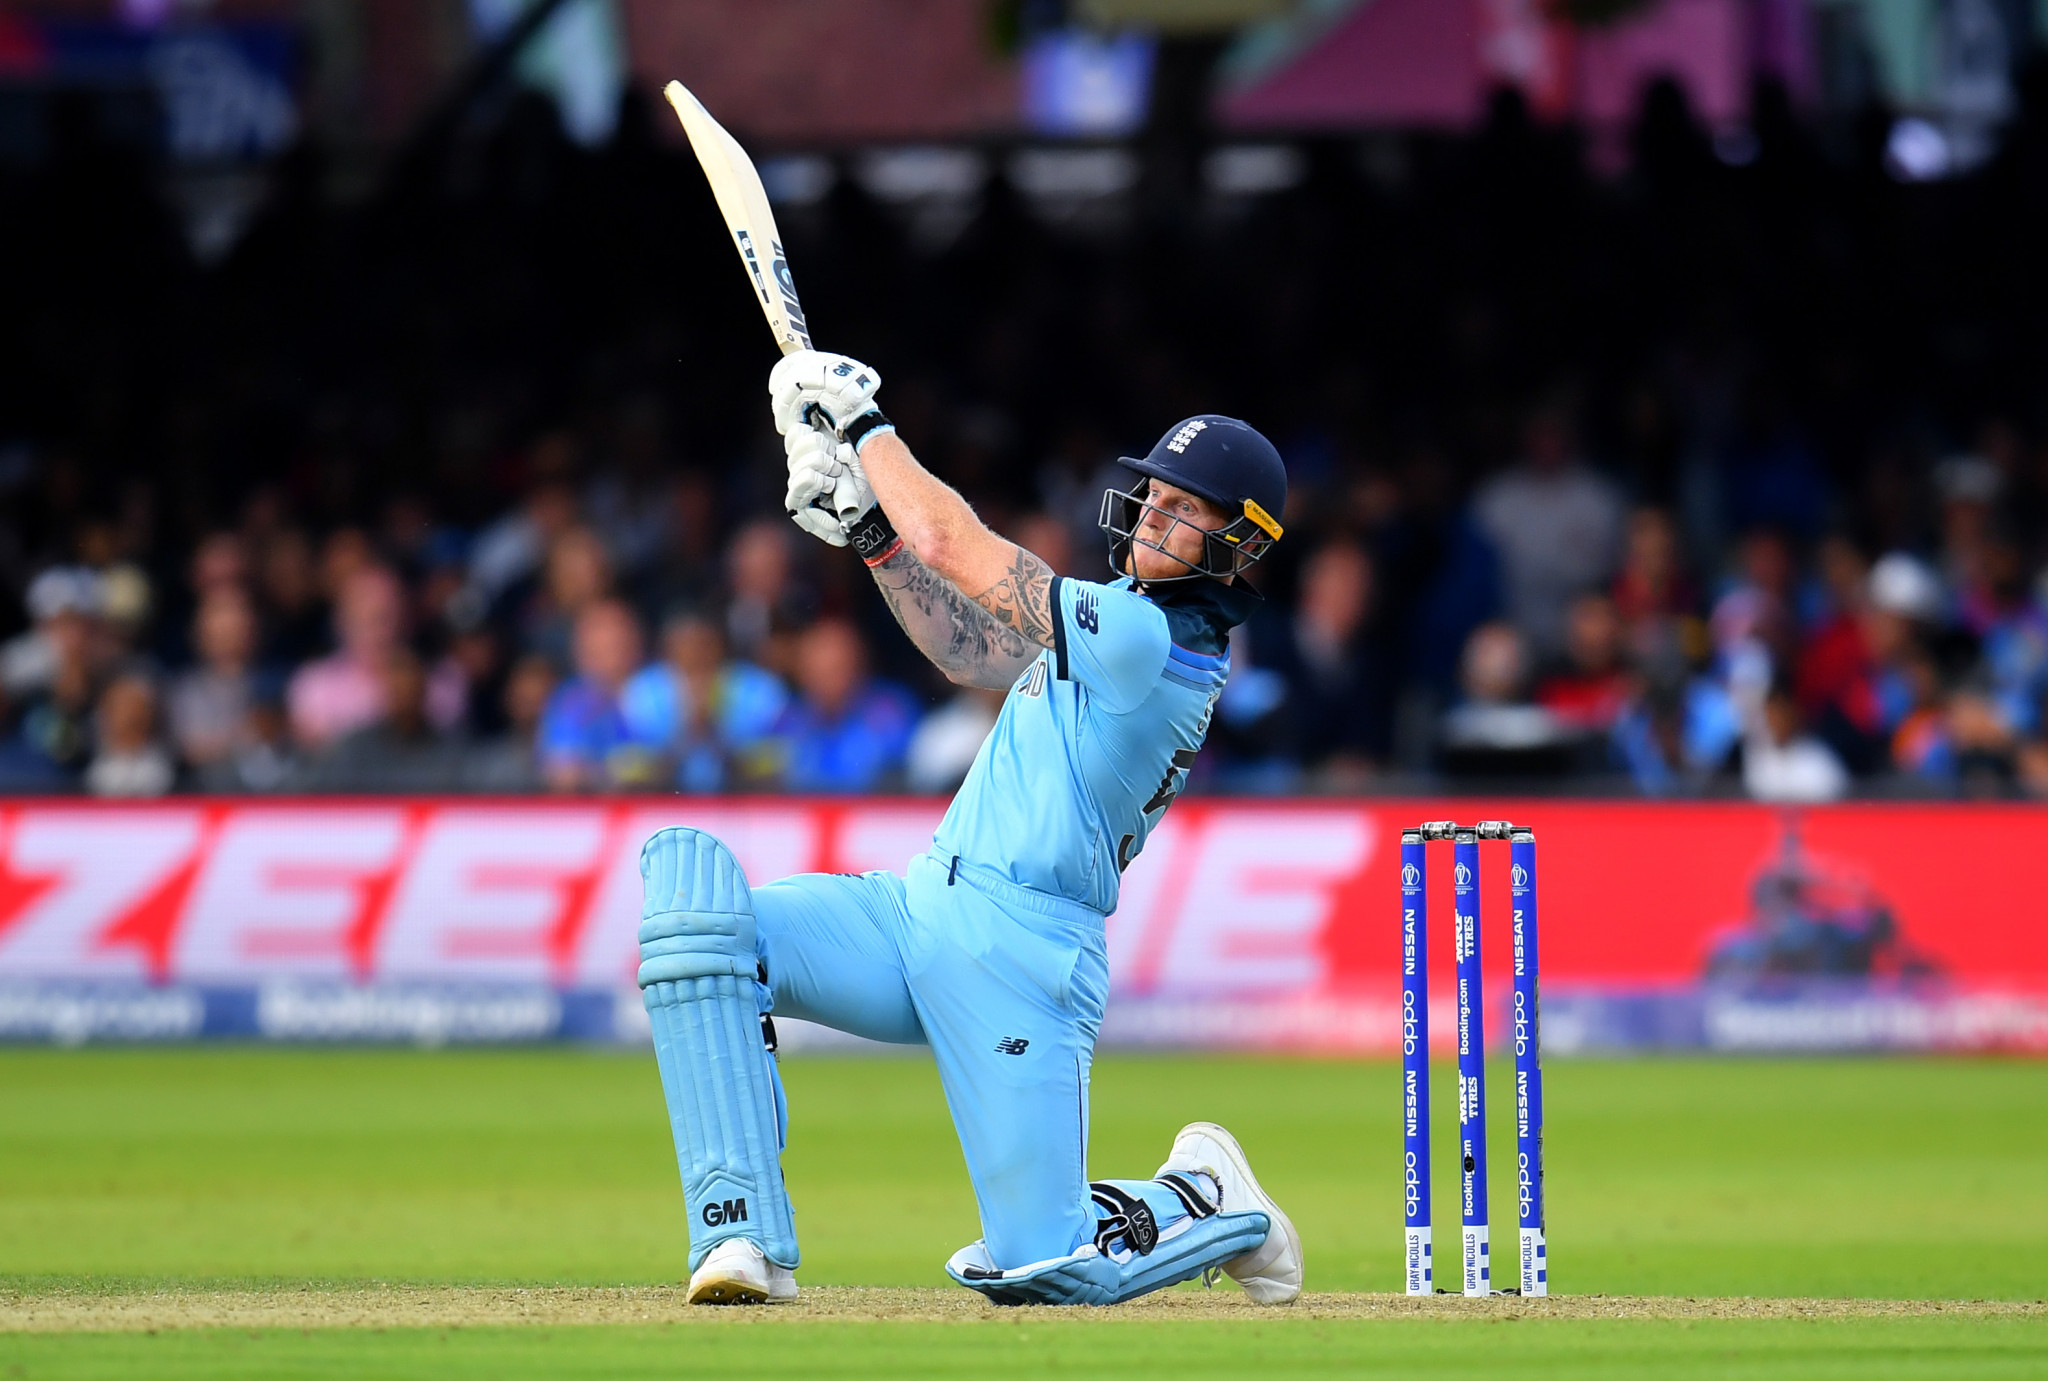 England appeared to be heading for defeat after losing four early wickets until Ben Stokes hit 84 to help them tie with New Zealand and setting up the dramatic super over ©Getty Images